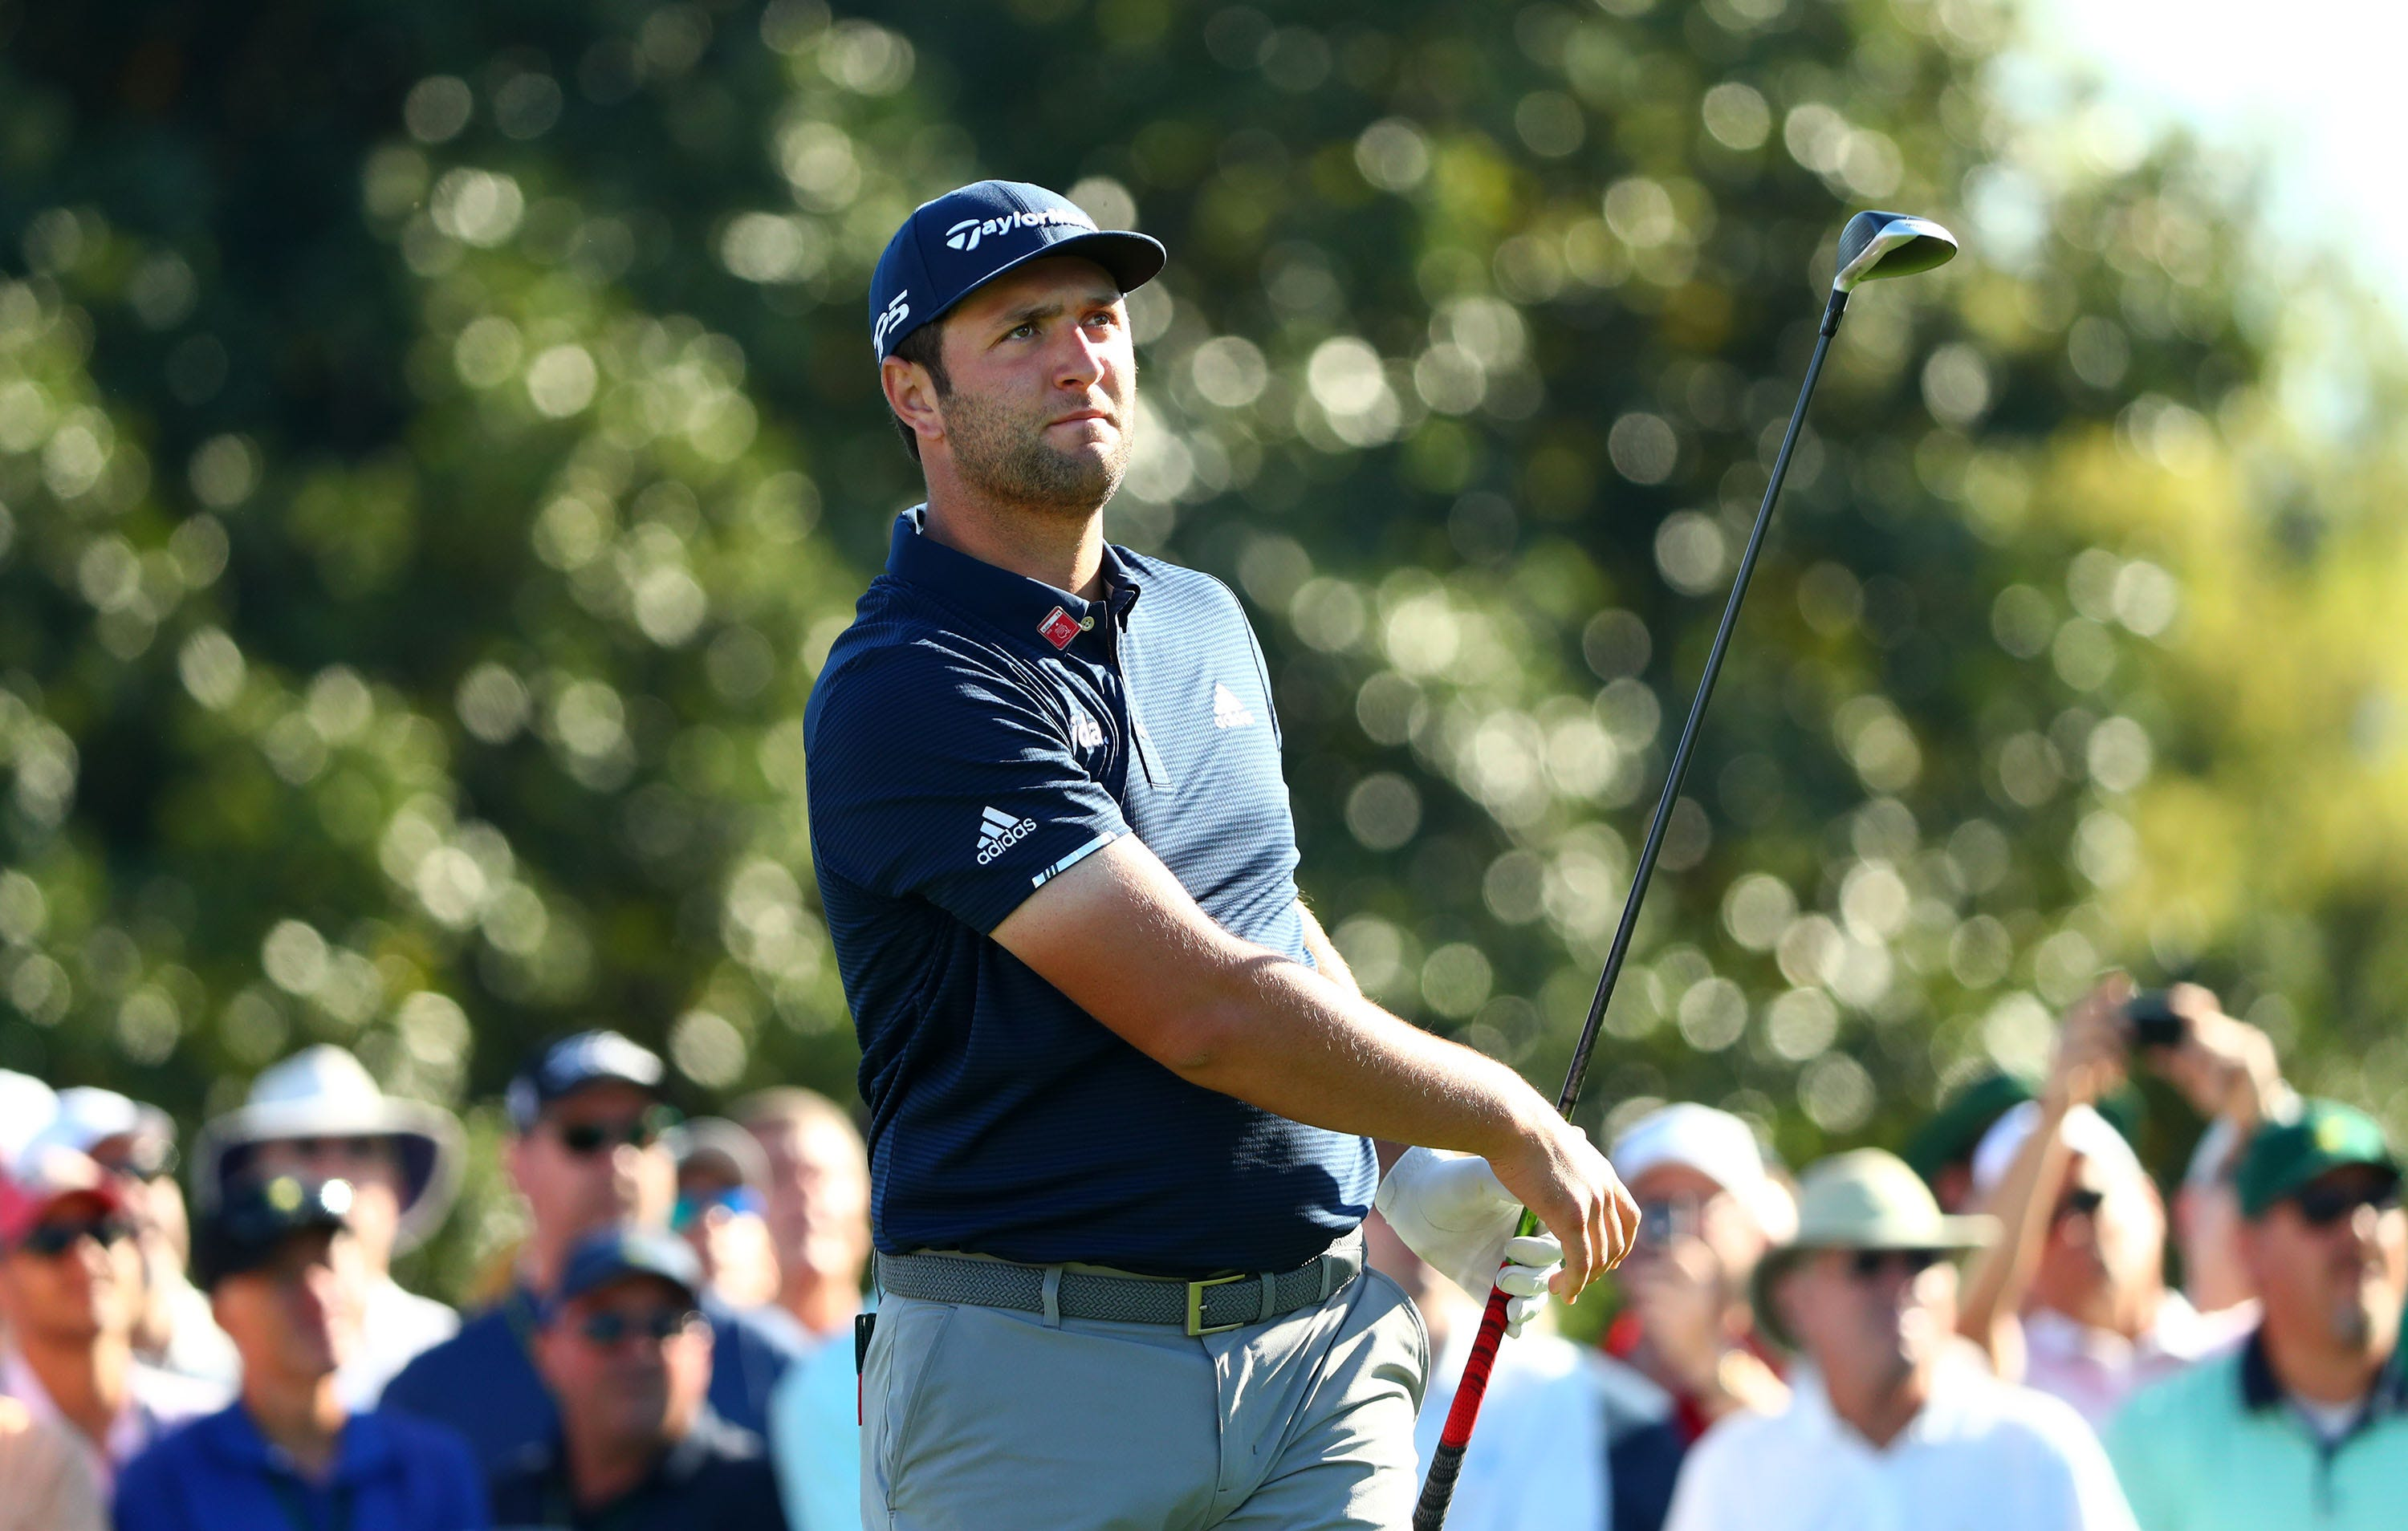 BetMGM pays out bets on Jon Rahm at the Memorial Tournament